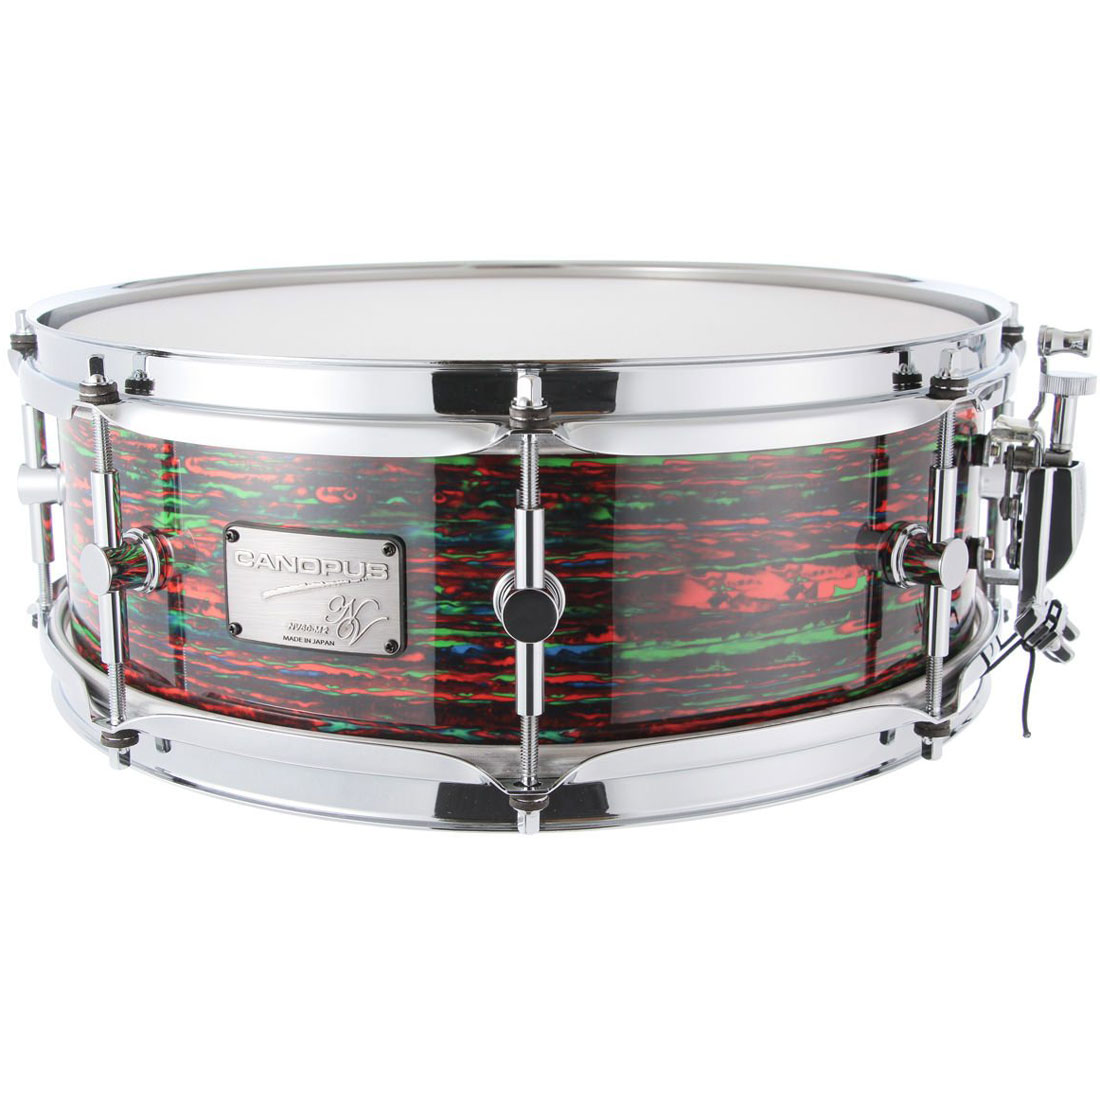 """Canopus 14"""" x 6.5"""" Neo Vintage M2 Snare Drum in Psychedelic Red"""